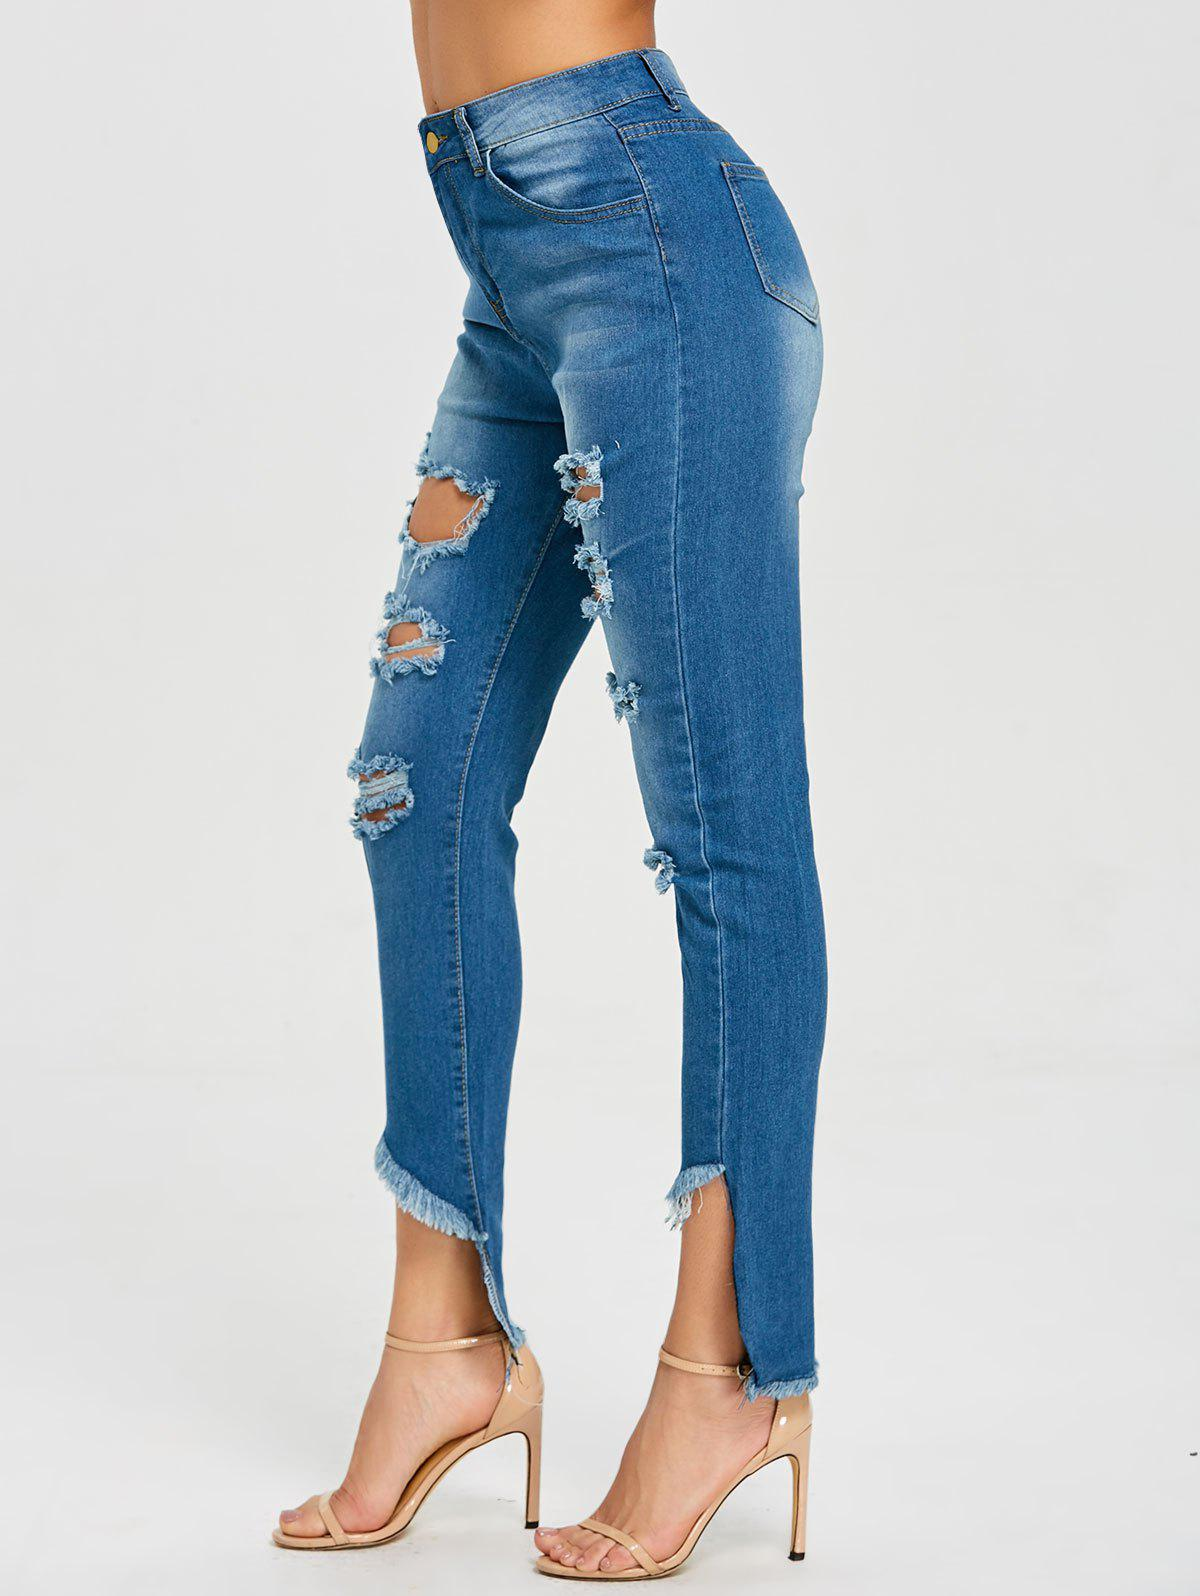 High Waisted Frayed Ripped Jeans - BLUE L